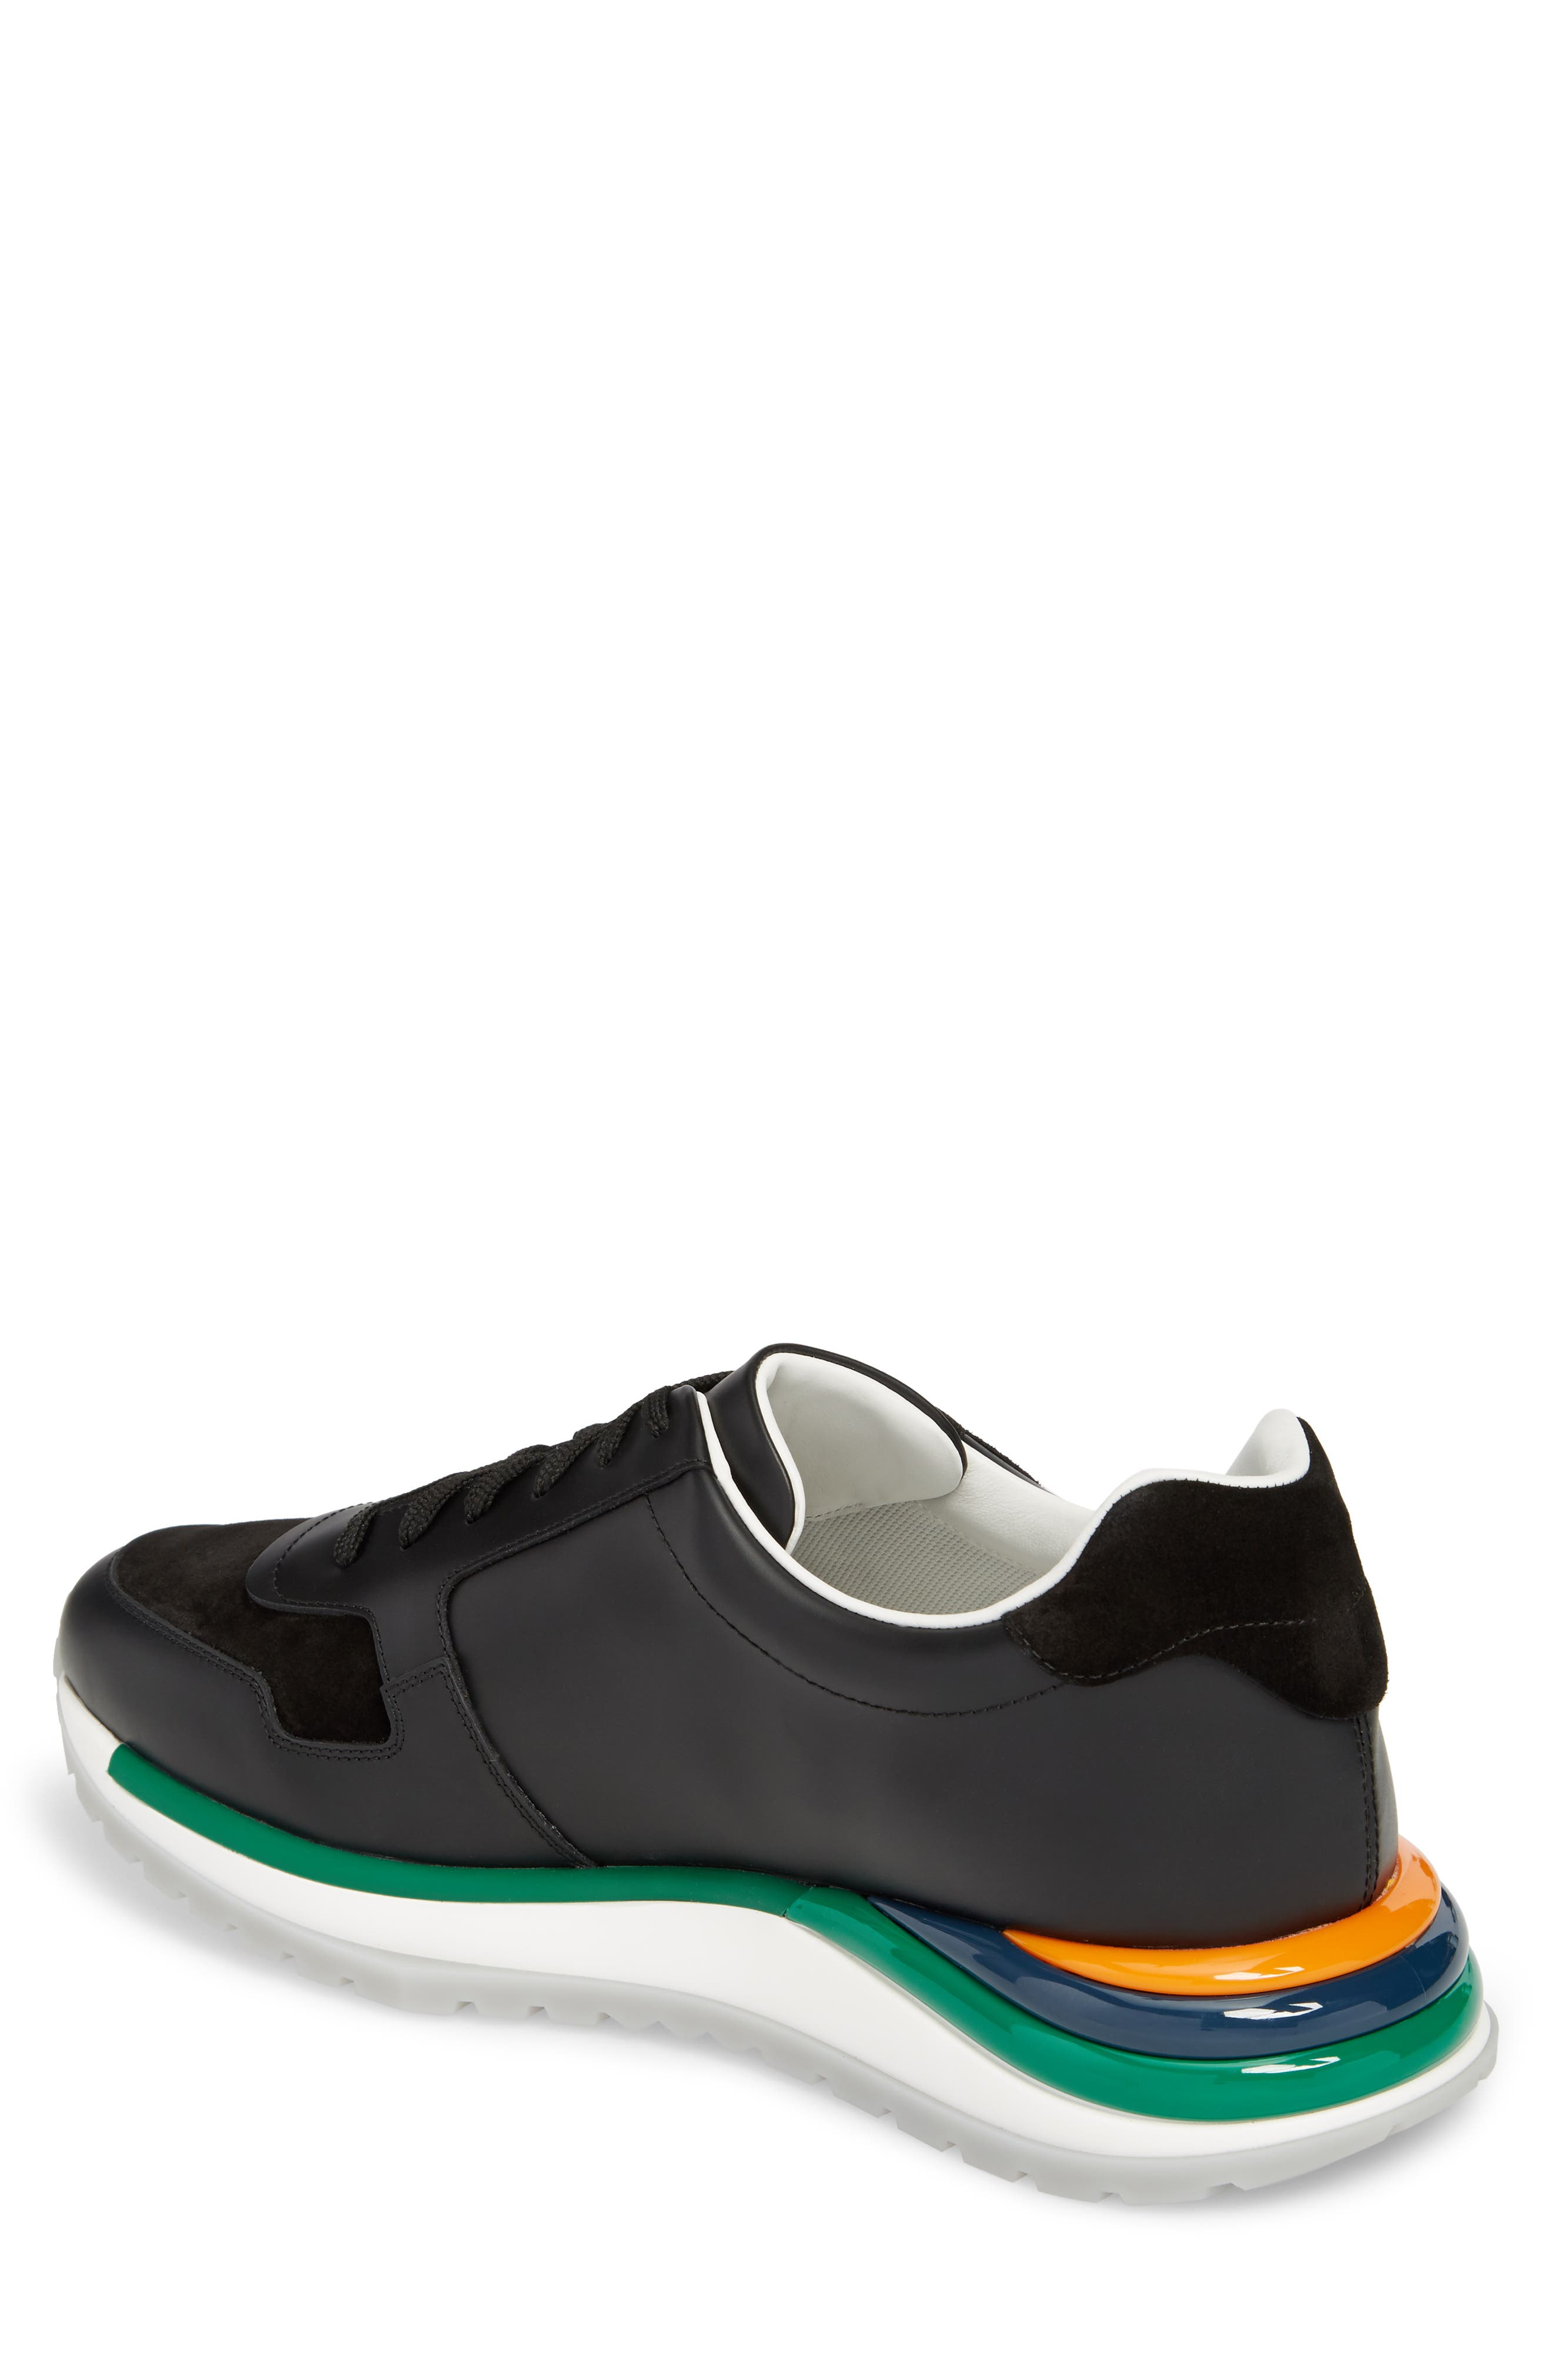 Brooklyn Running Shoe,                             Alternate thumbnail 2, color,                             NERO LEATHER